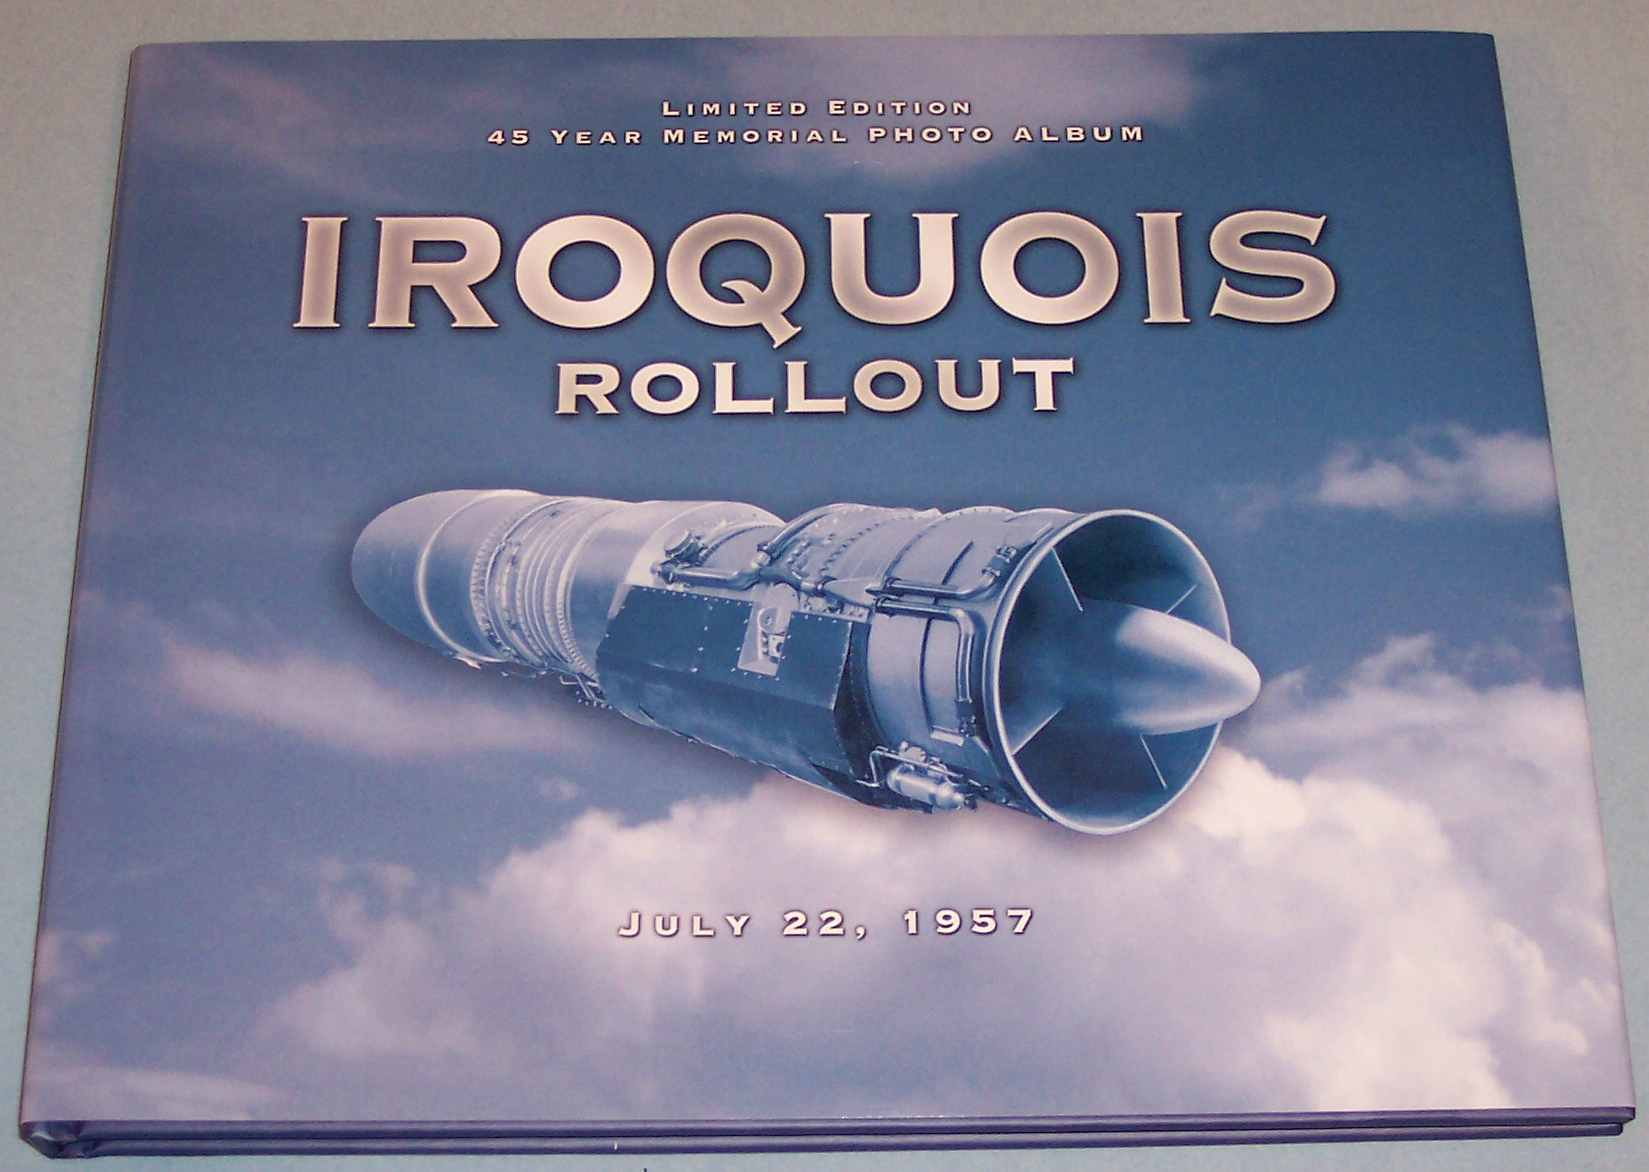 Image for Iroquois Rollout, July 22, 1957 : 45 Year Memorial Photo Album